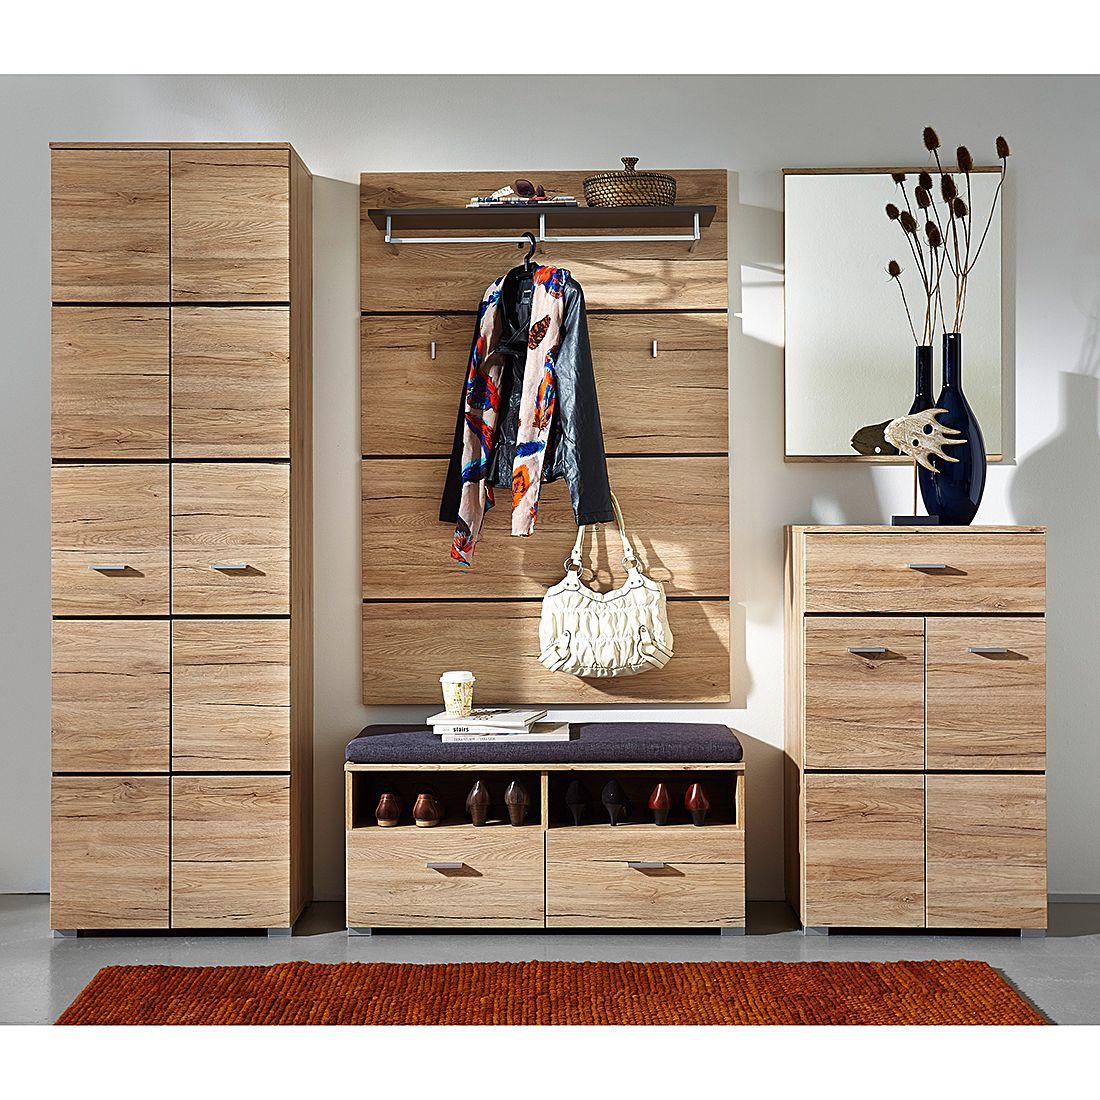 haushalt online g nstig kaufen ber shop24. Black Bedroom Furniture Sets. Home Design Ideas